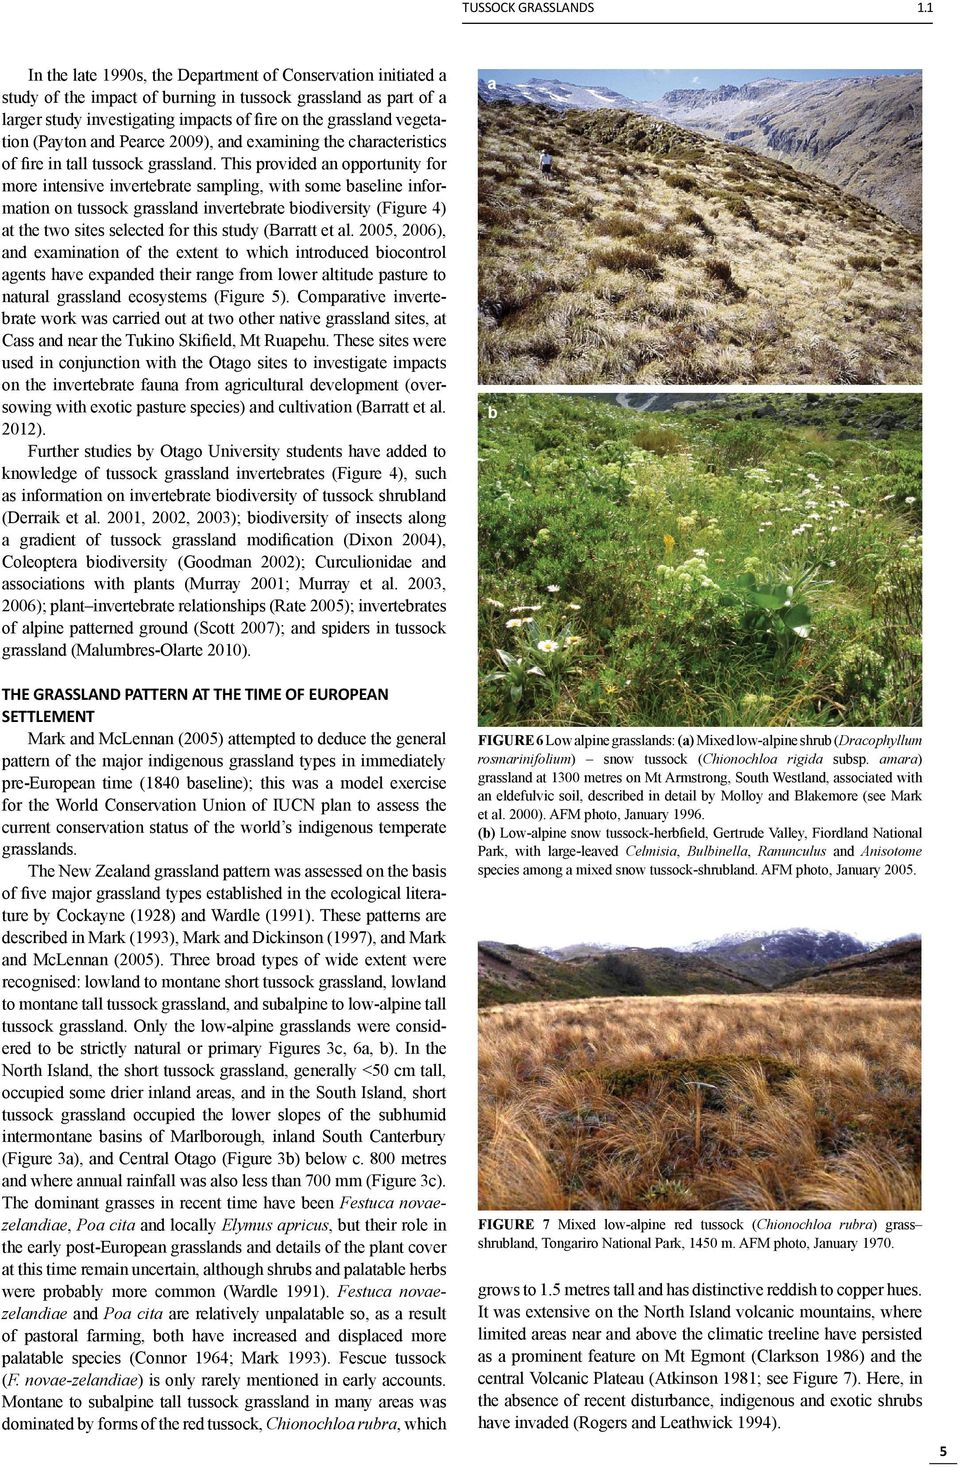 (Payton and Pearce 2009), and examining the characteristics of fire in tall tussock grassland.